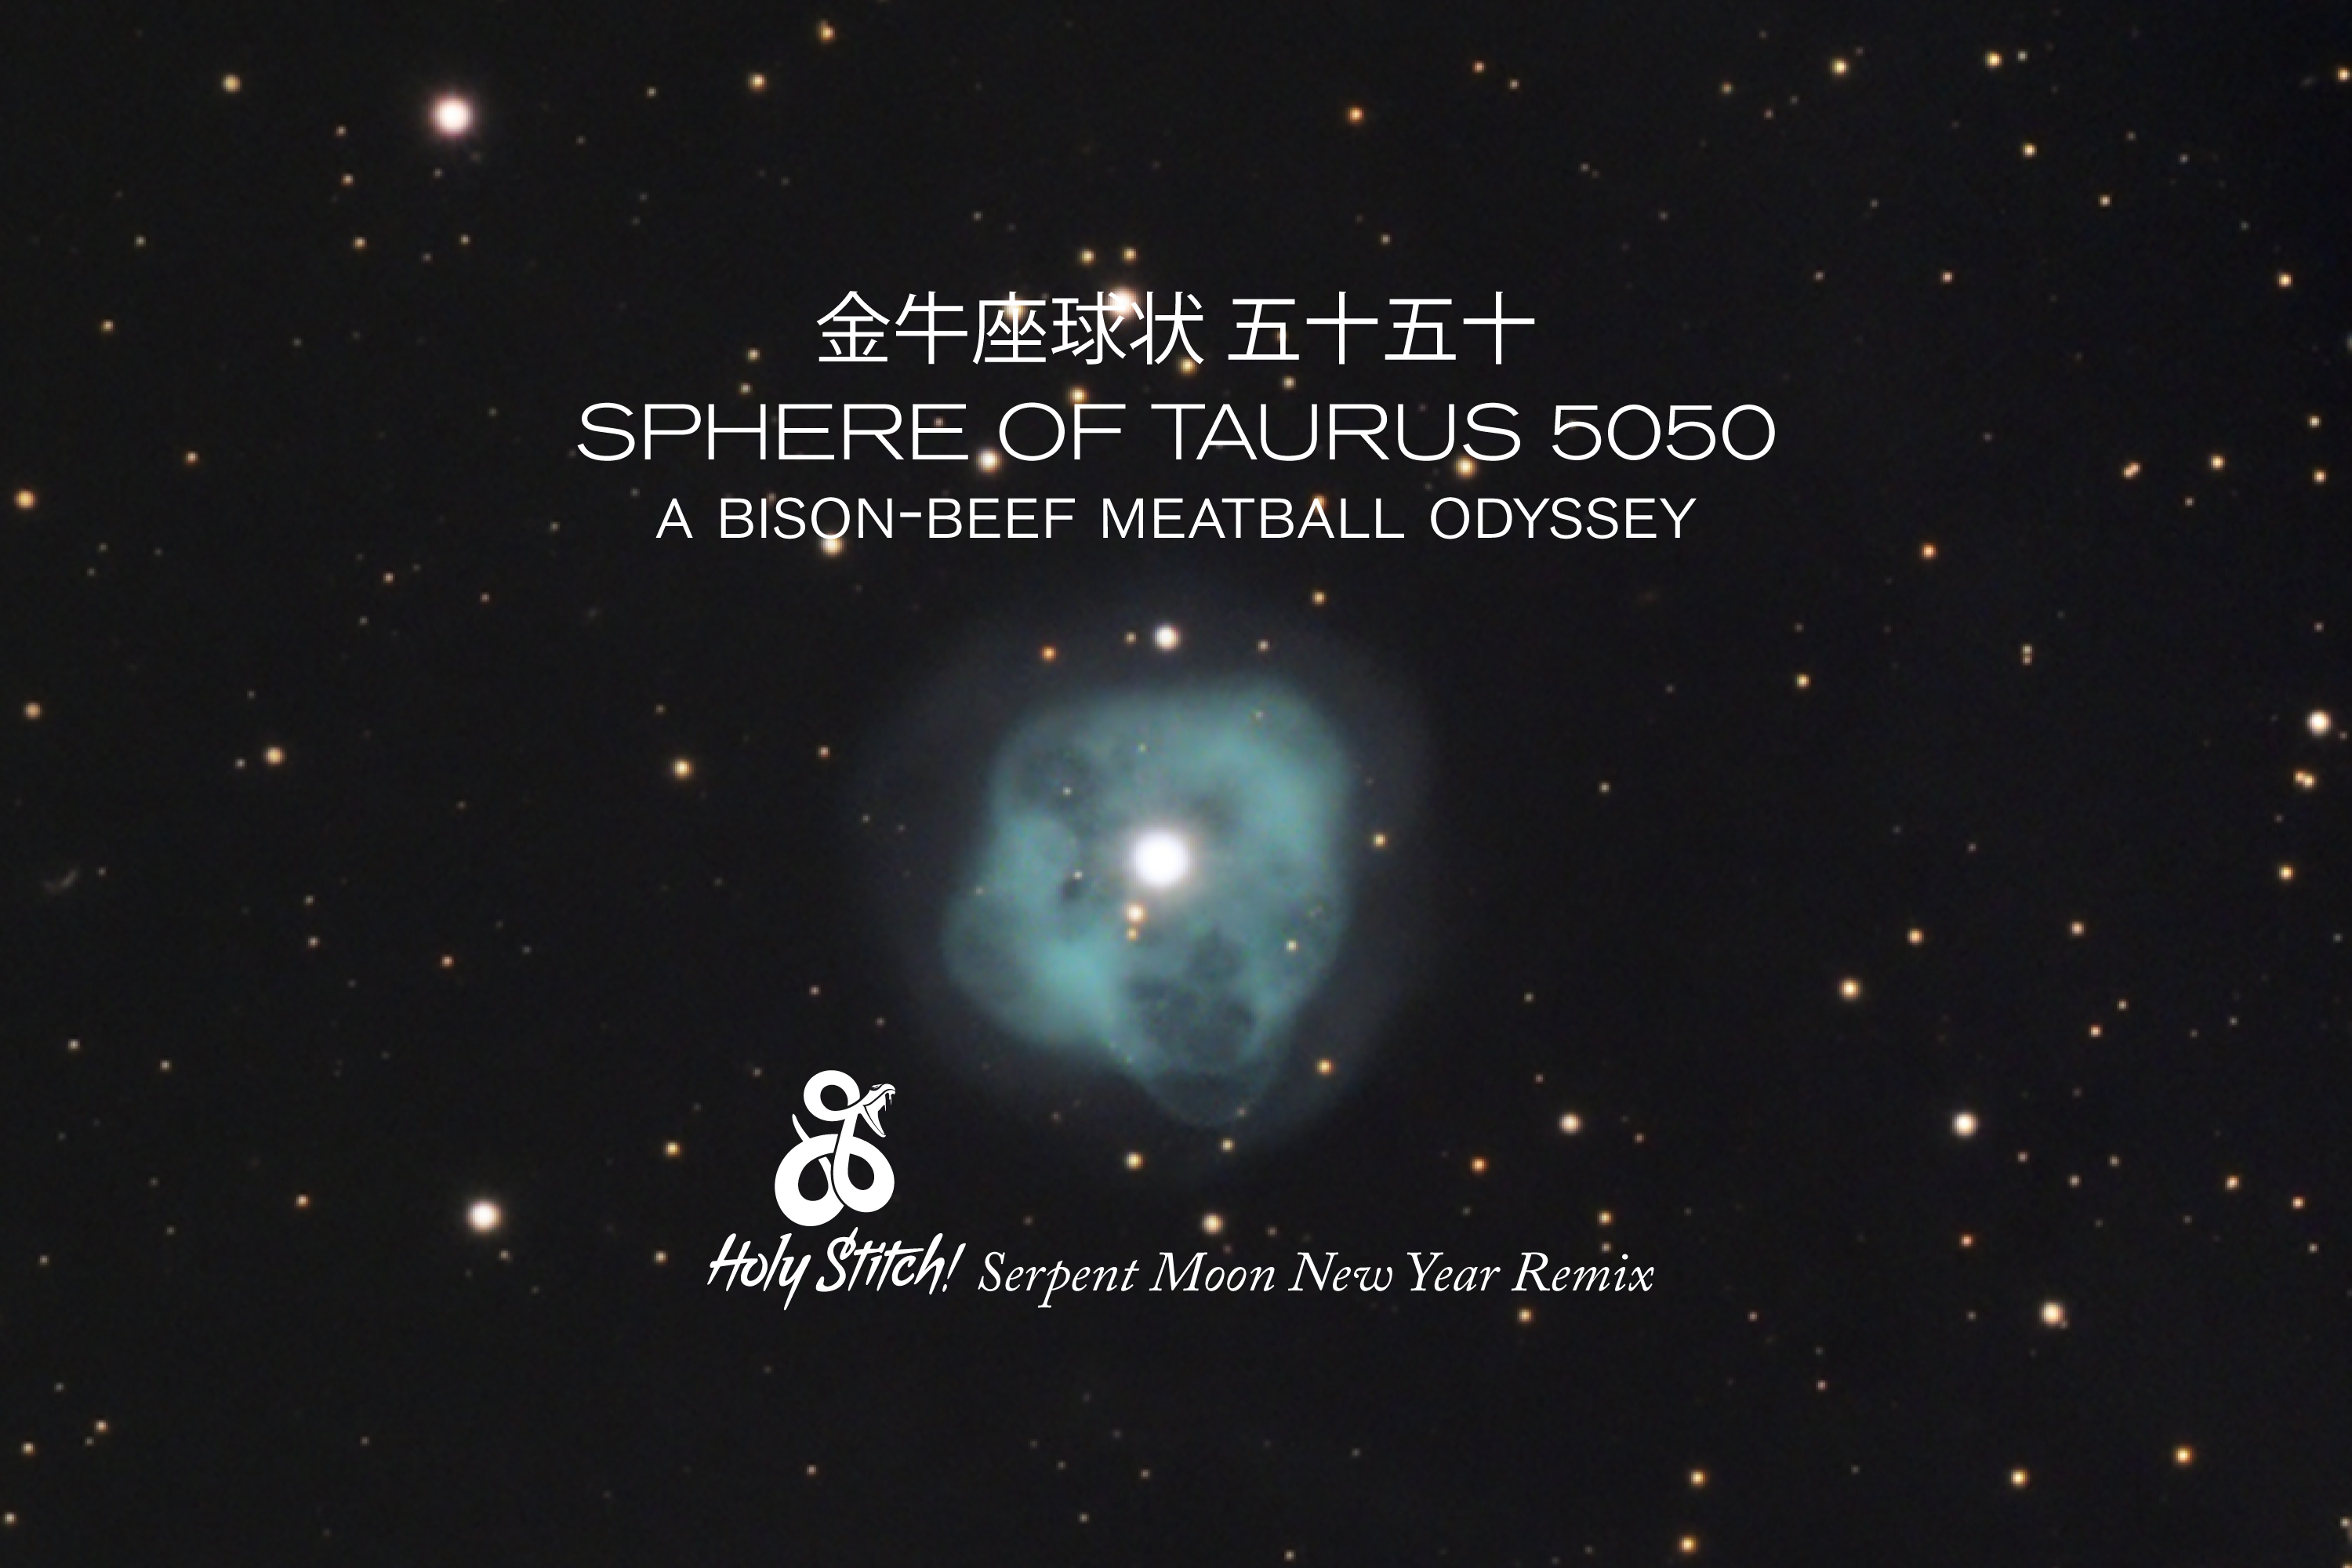 LUNAR NEW YEAR BISON BALLS aka SPHERE OF TAURUS 5050 (Holy Stitch! Serpent Moon New Year Remix) - image 1 - student project